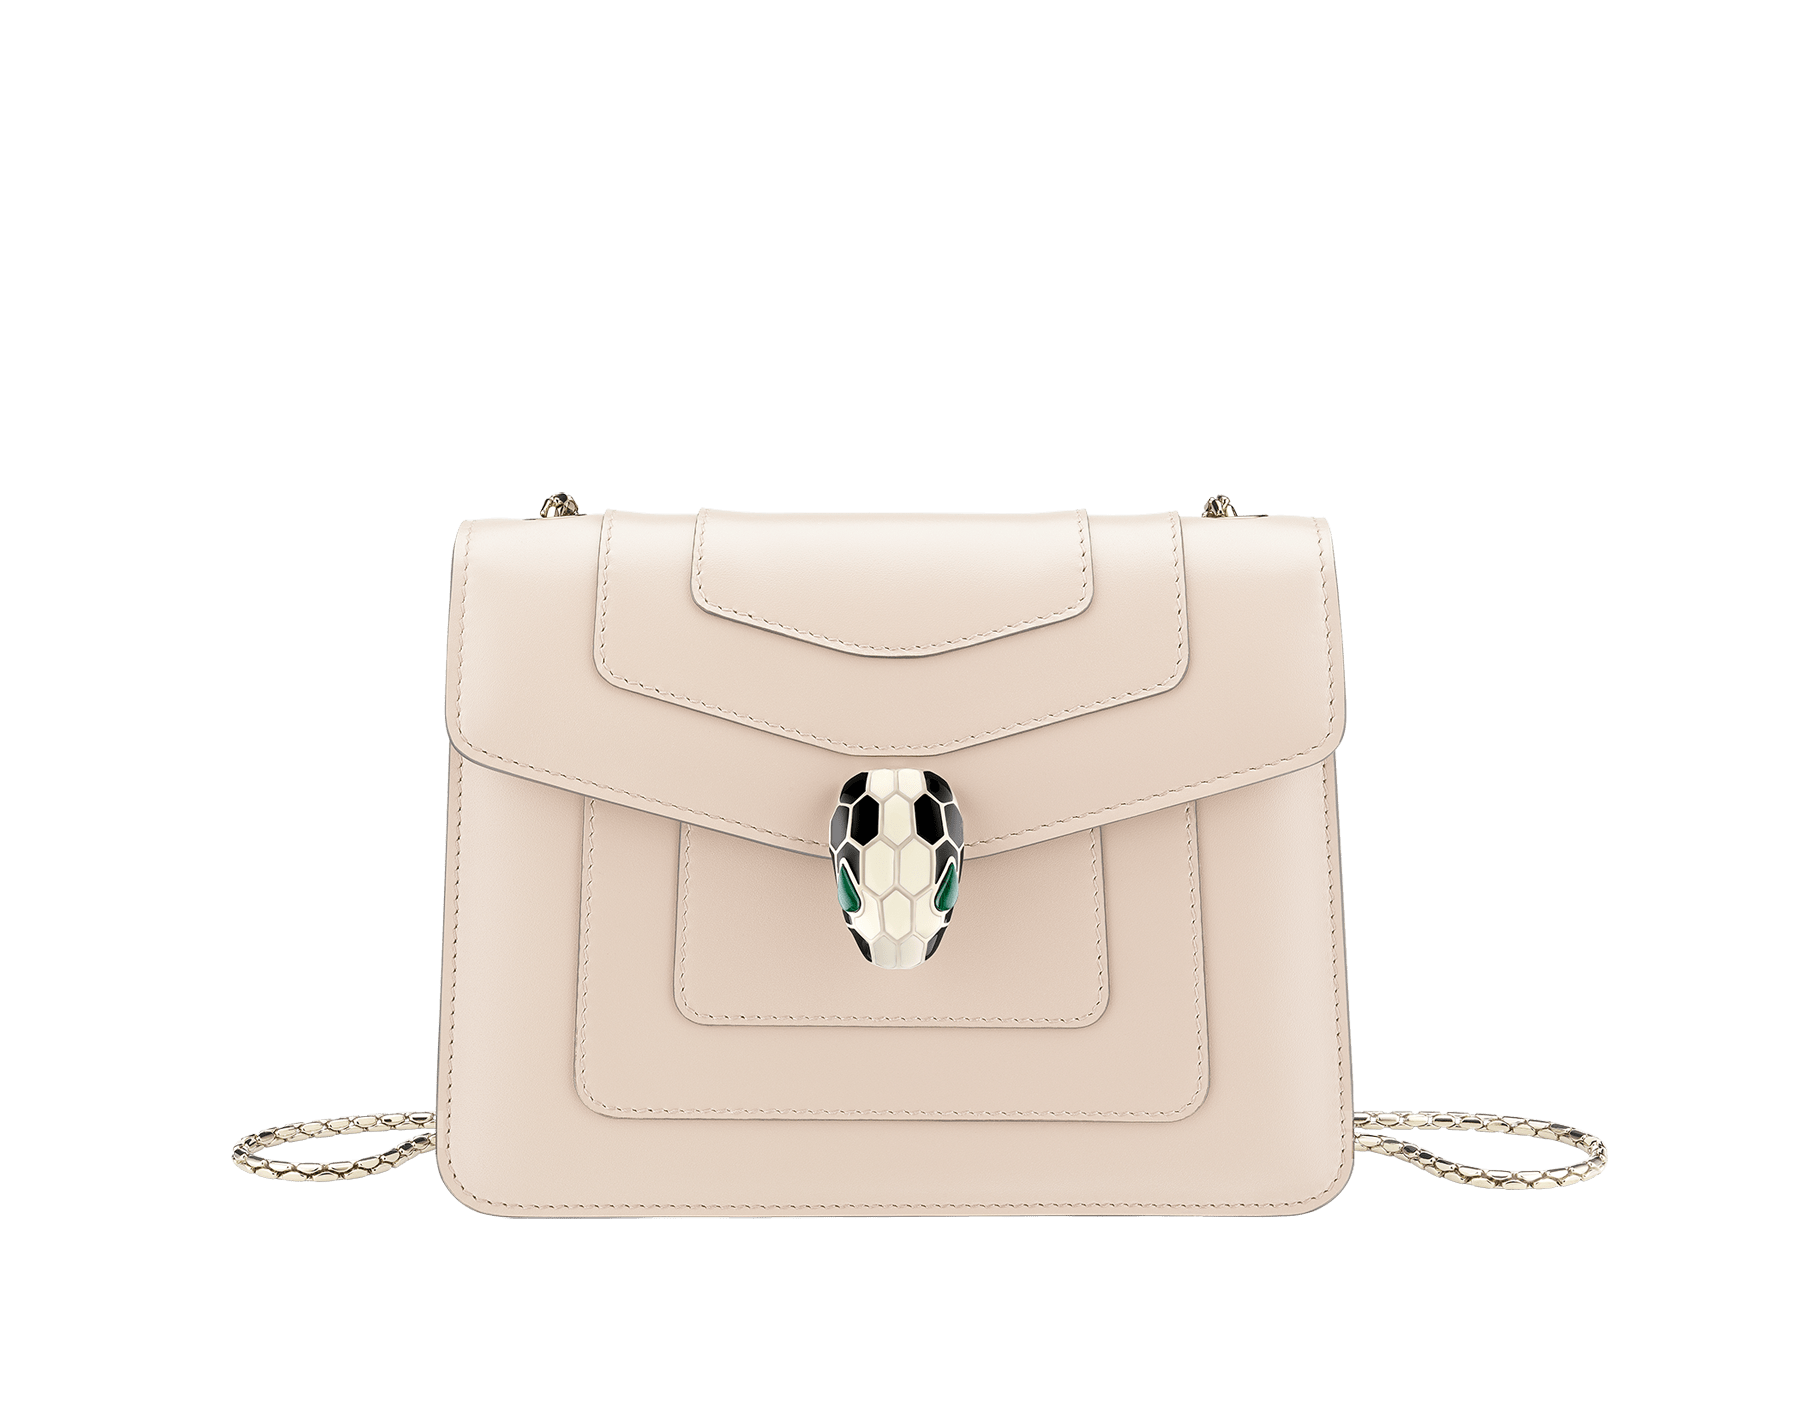 """Serpenti Forever "" crossbody bag in cobalt tourmaline calf leather. Iconic snakehead closure in light gold plated brass enriched with black and white enamel and green malachite eyes 422-CLb image 1"